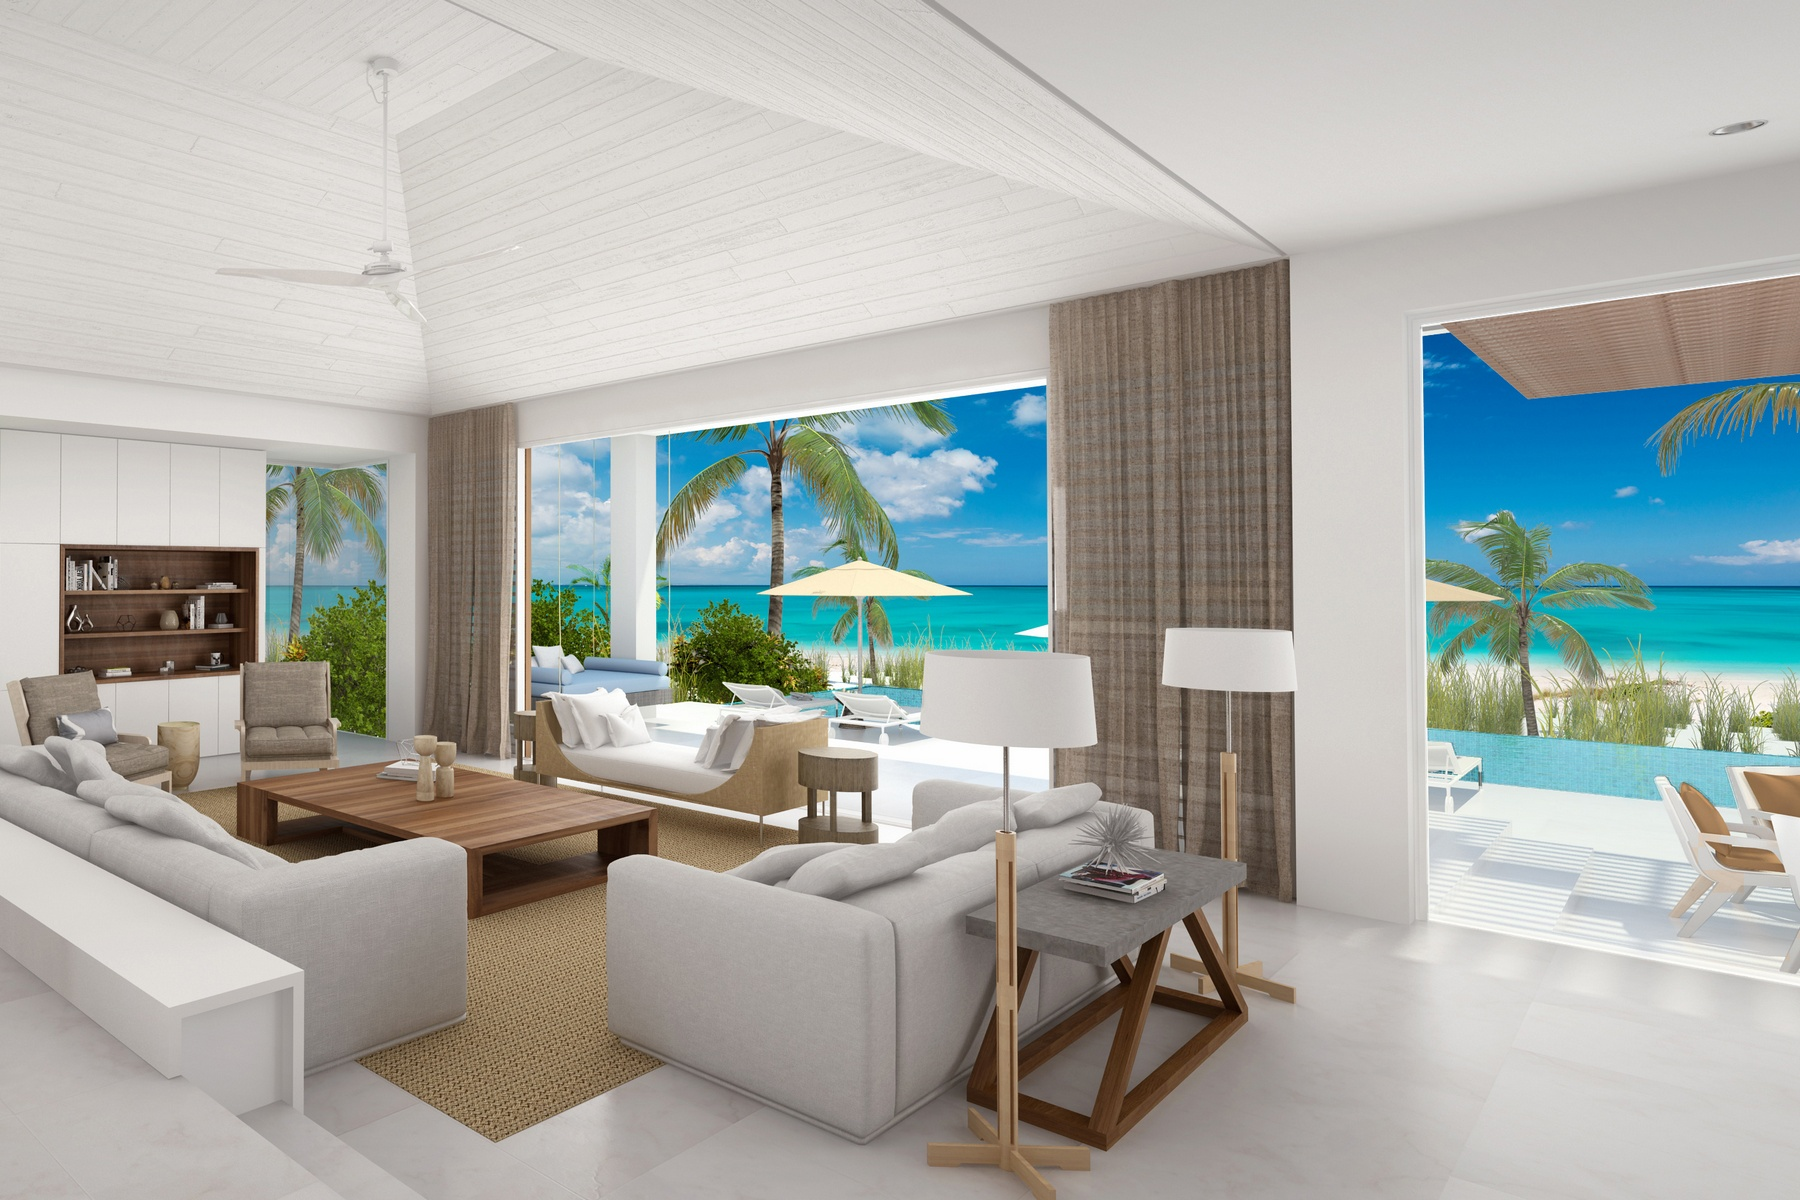 Single Family Home for Sale at BEACH ENCLAVE GRACE BAY Design A Oceanview Grace Bay, Providenciales TCI Turks And Caicos Islands